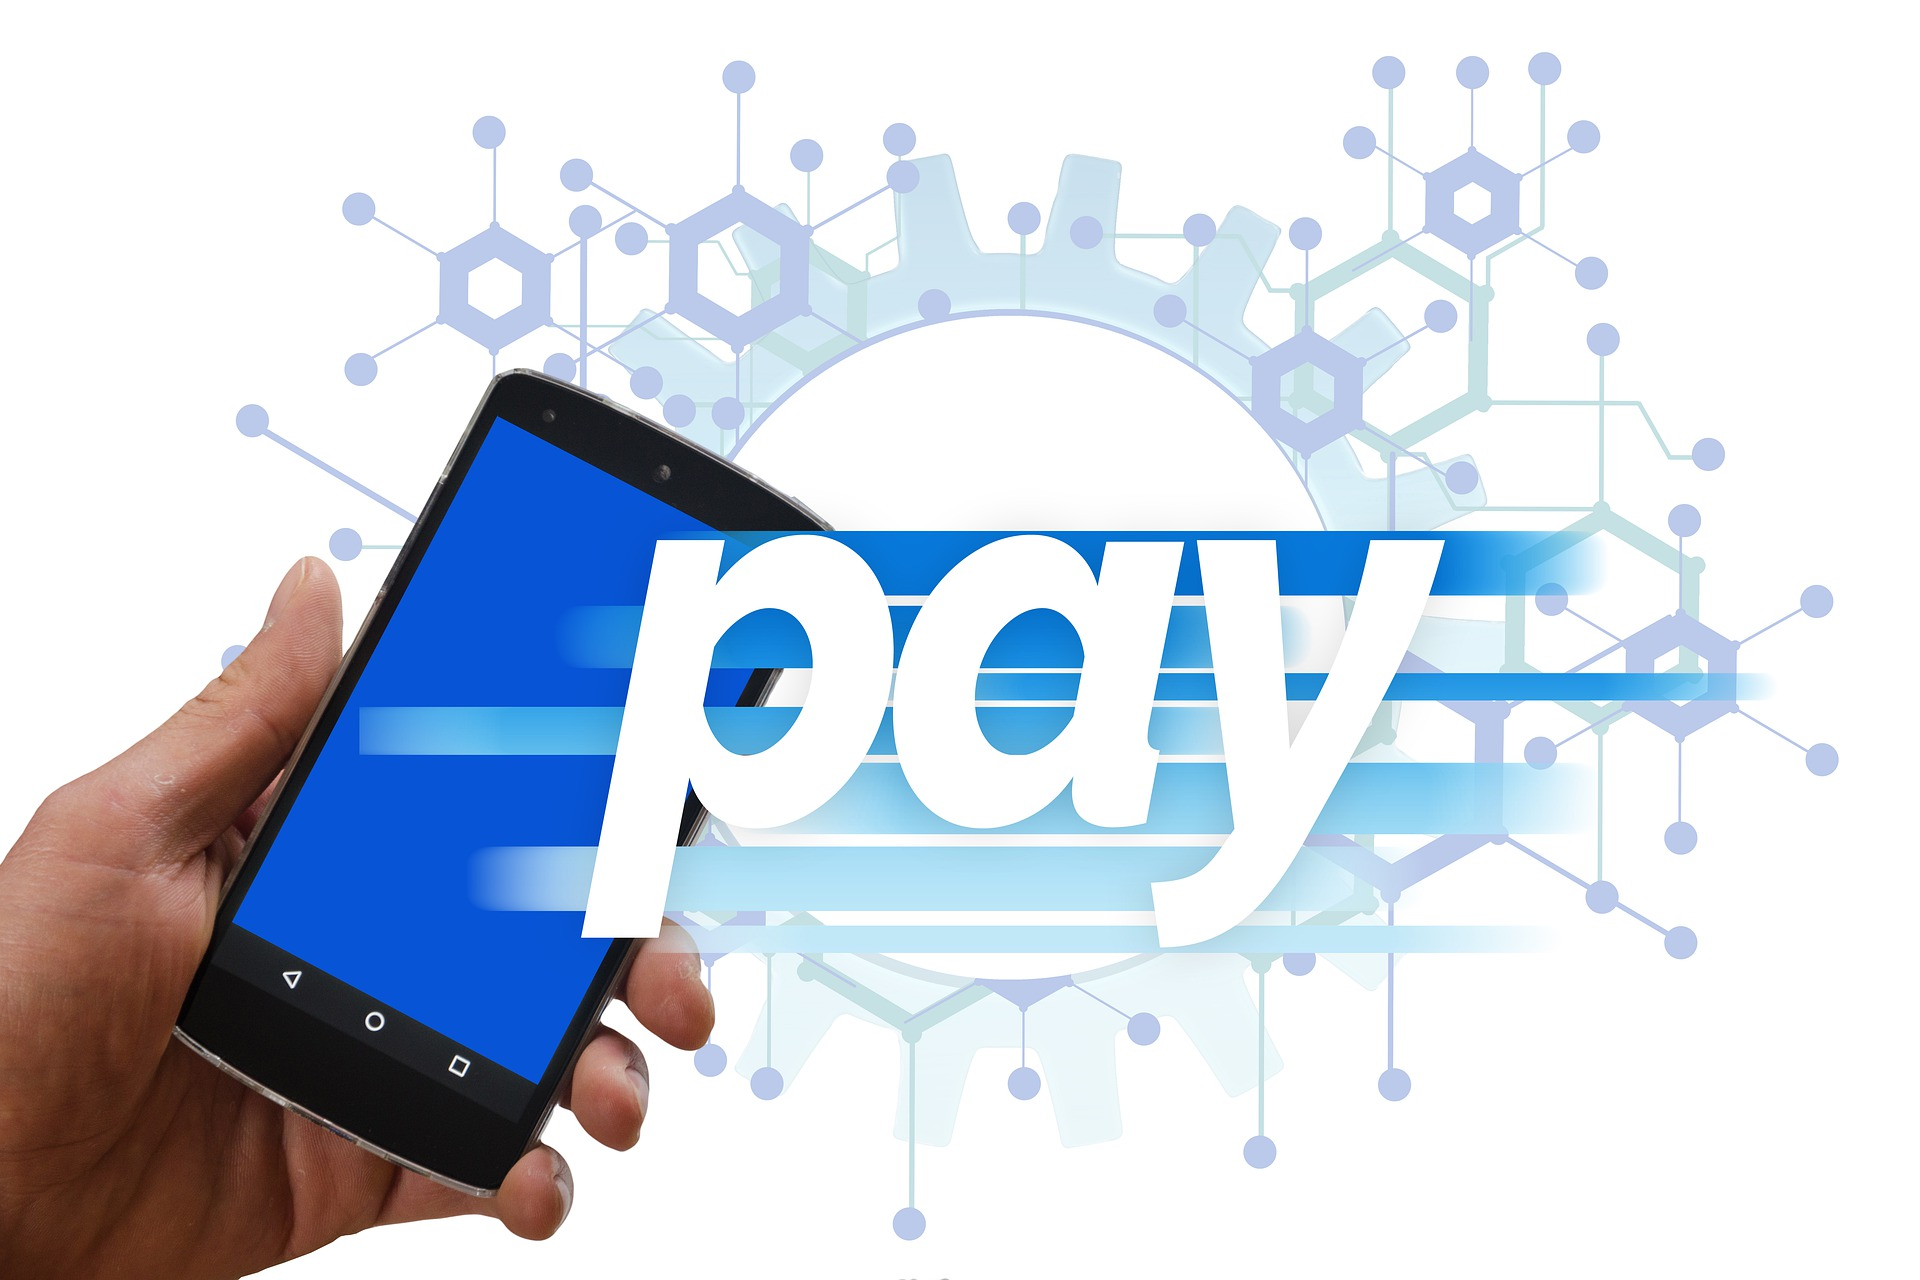 Mobile Payment wird immer beliebter